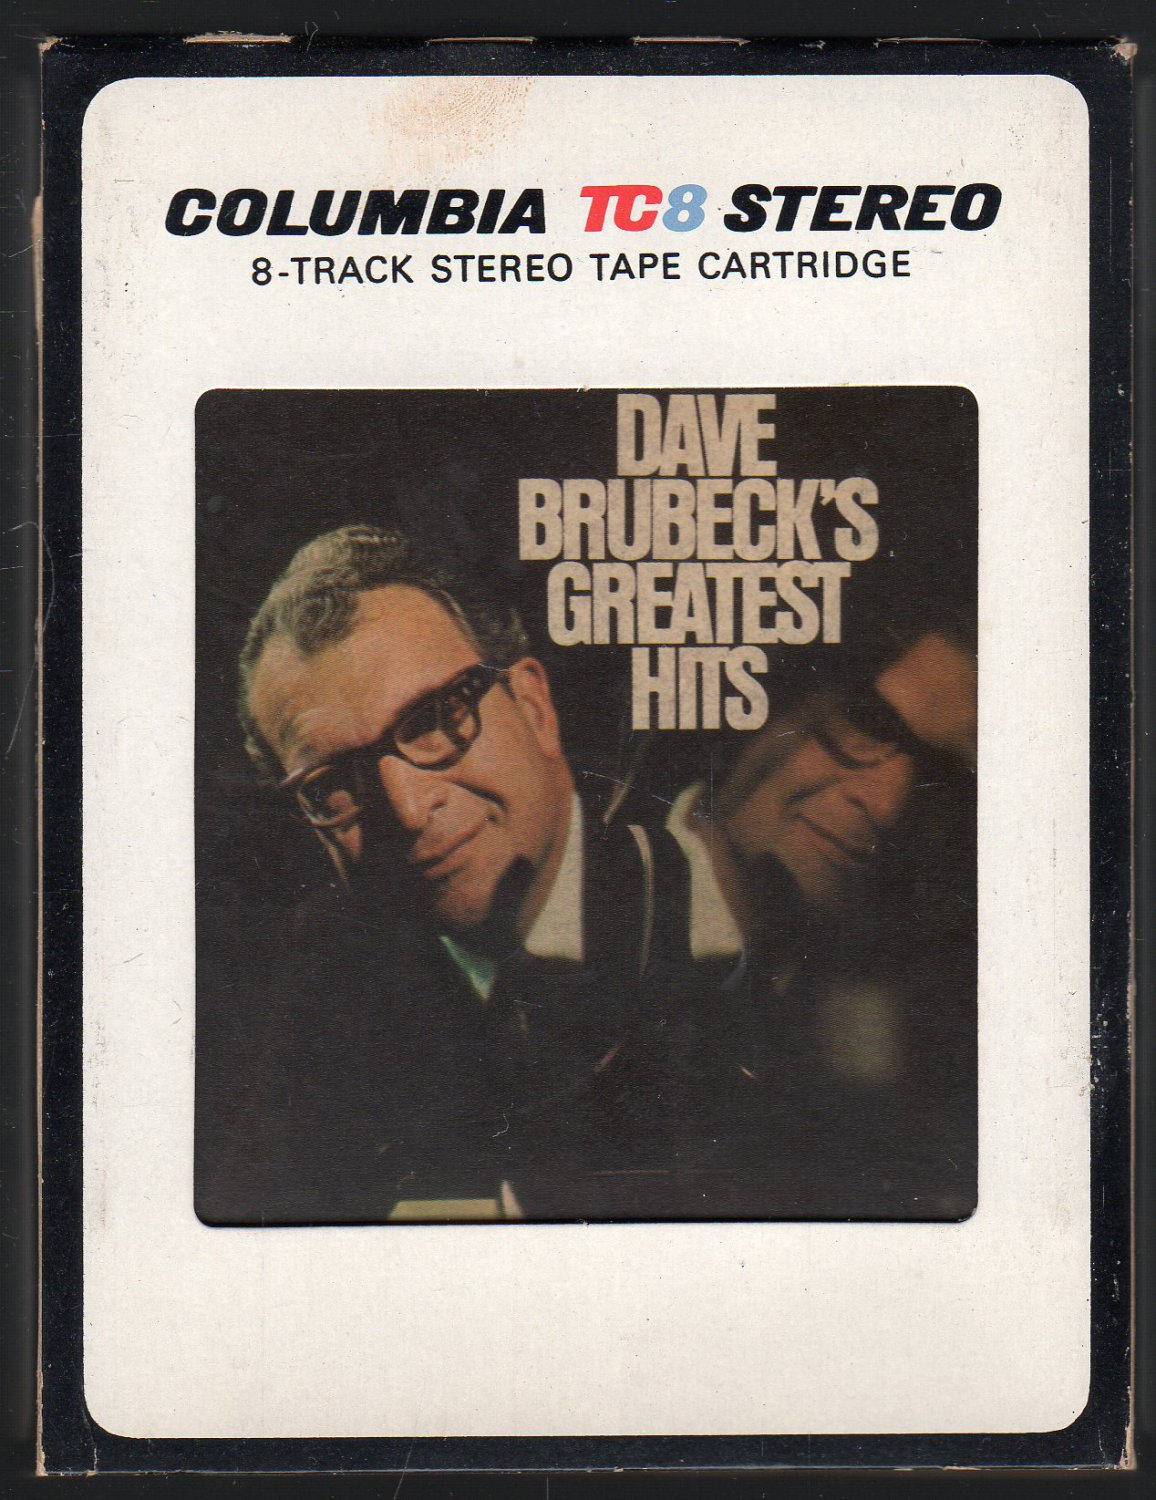 Dave Brubeck - Dave Brubeck's Greatest Hits 1966 CBS A26 8-TRACK TAPE